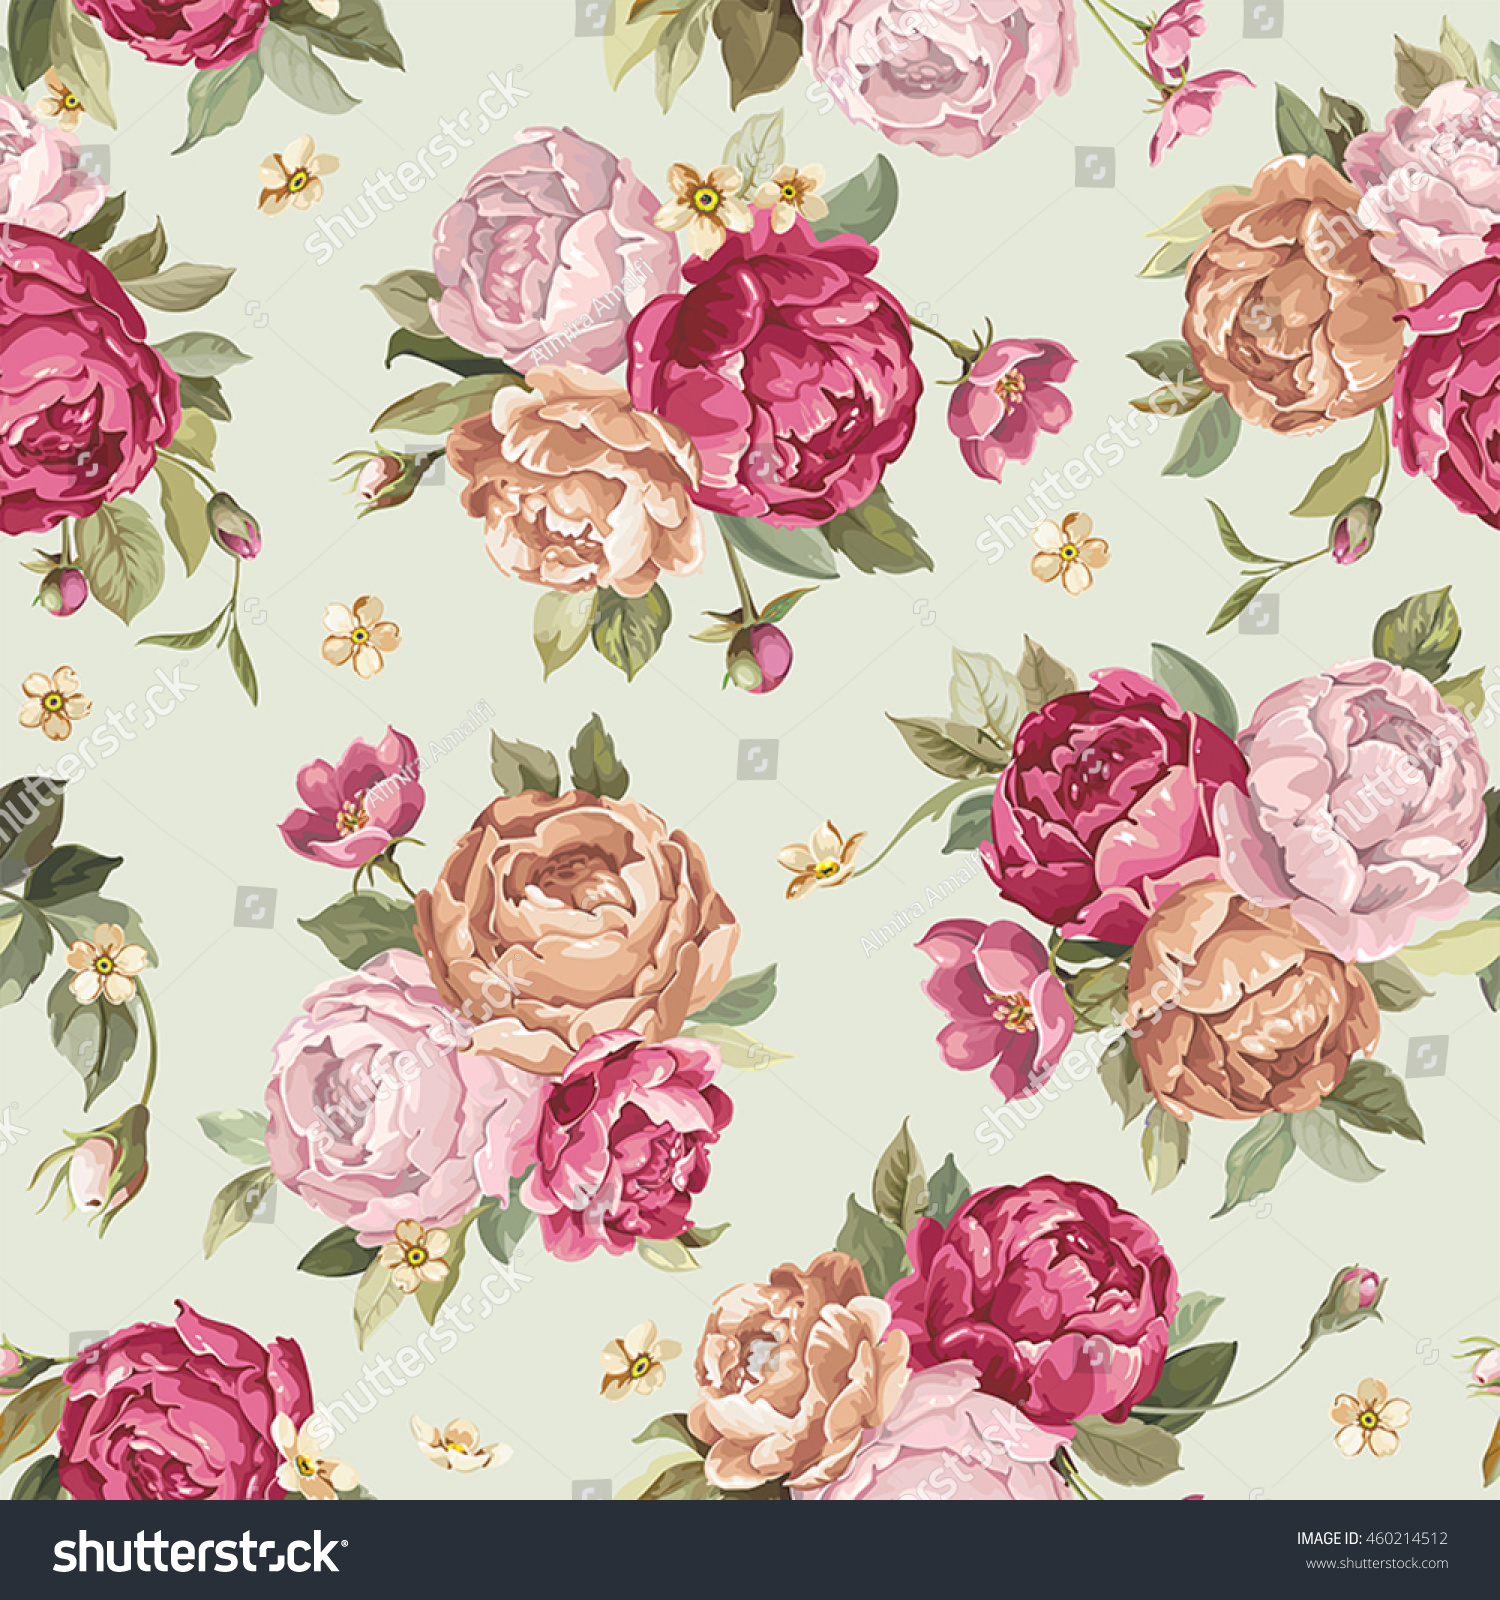 Elegance seamless pattern with flowers peony eps8